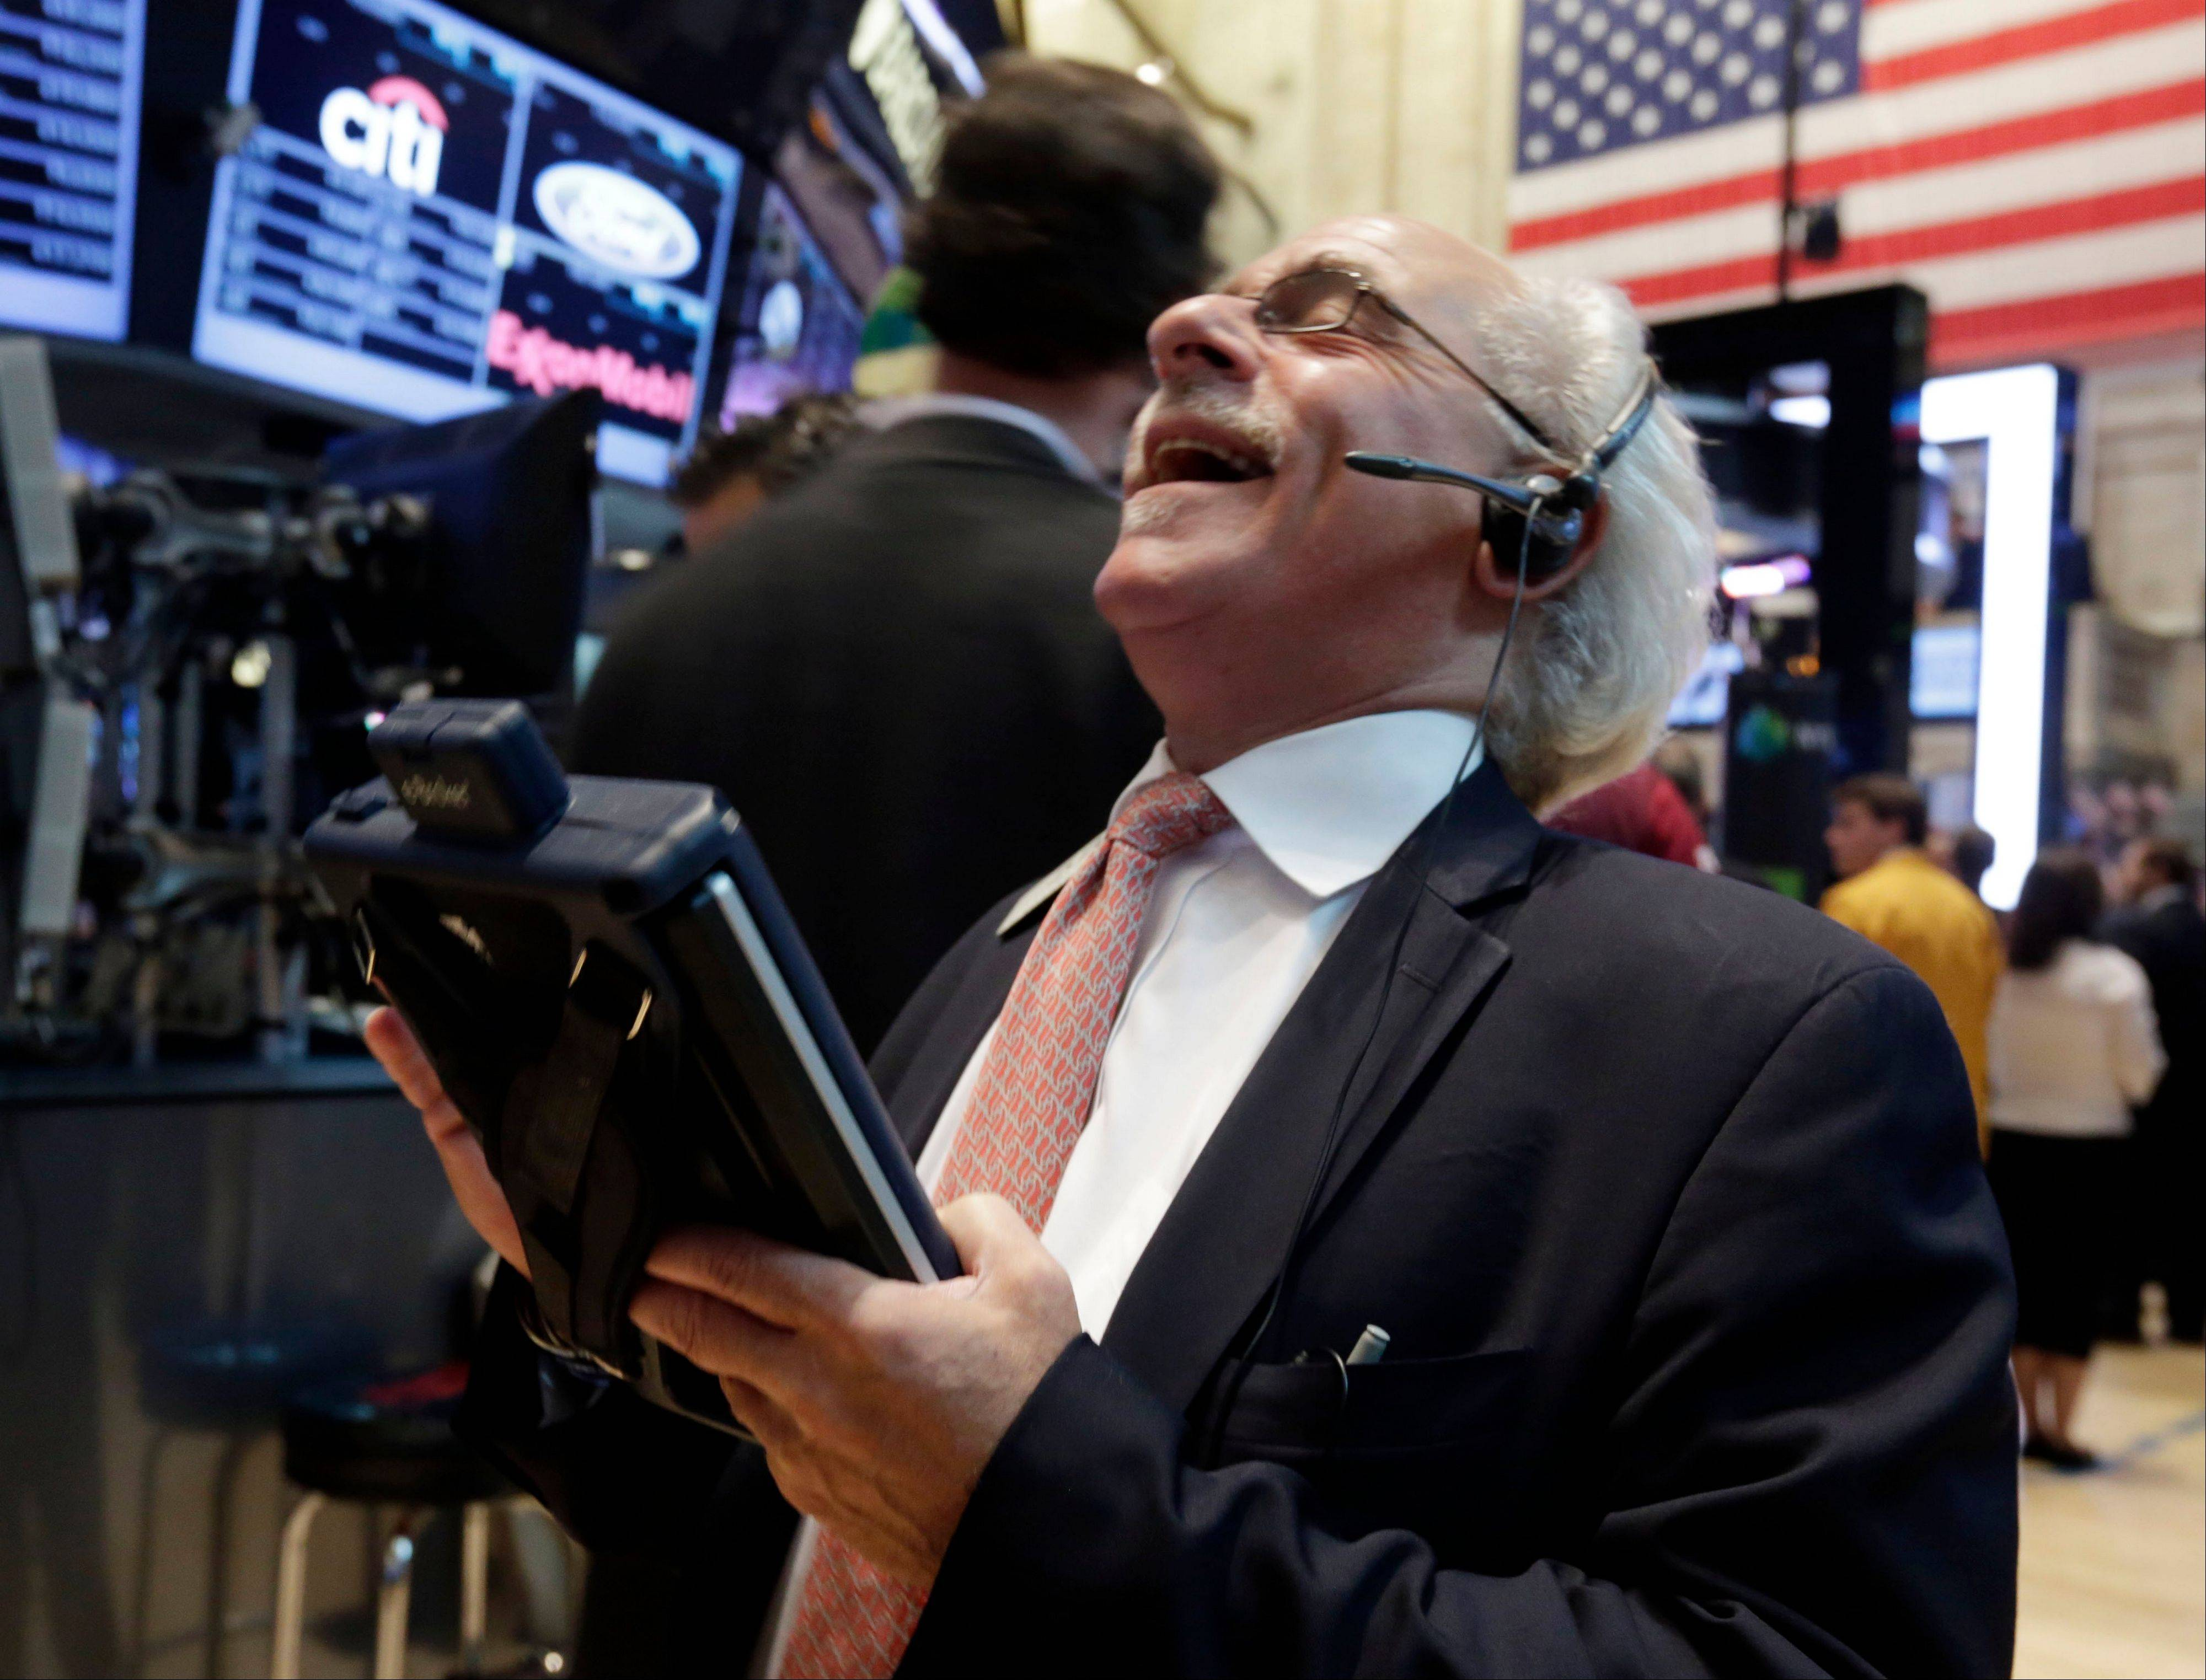 Trader Peter Tuchman reacts to another trader's comment as he works Friday on the floor of the New York Stock Exchange.